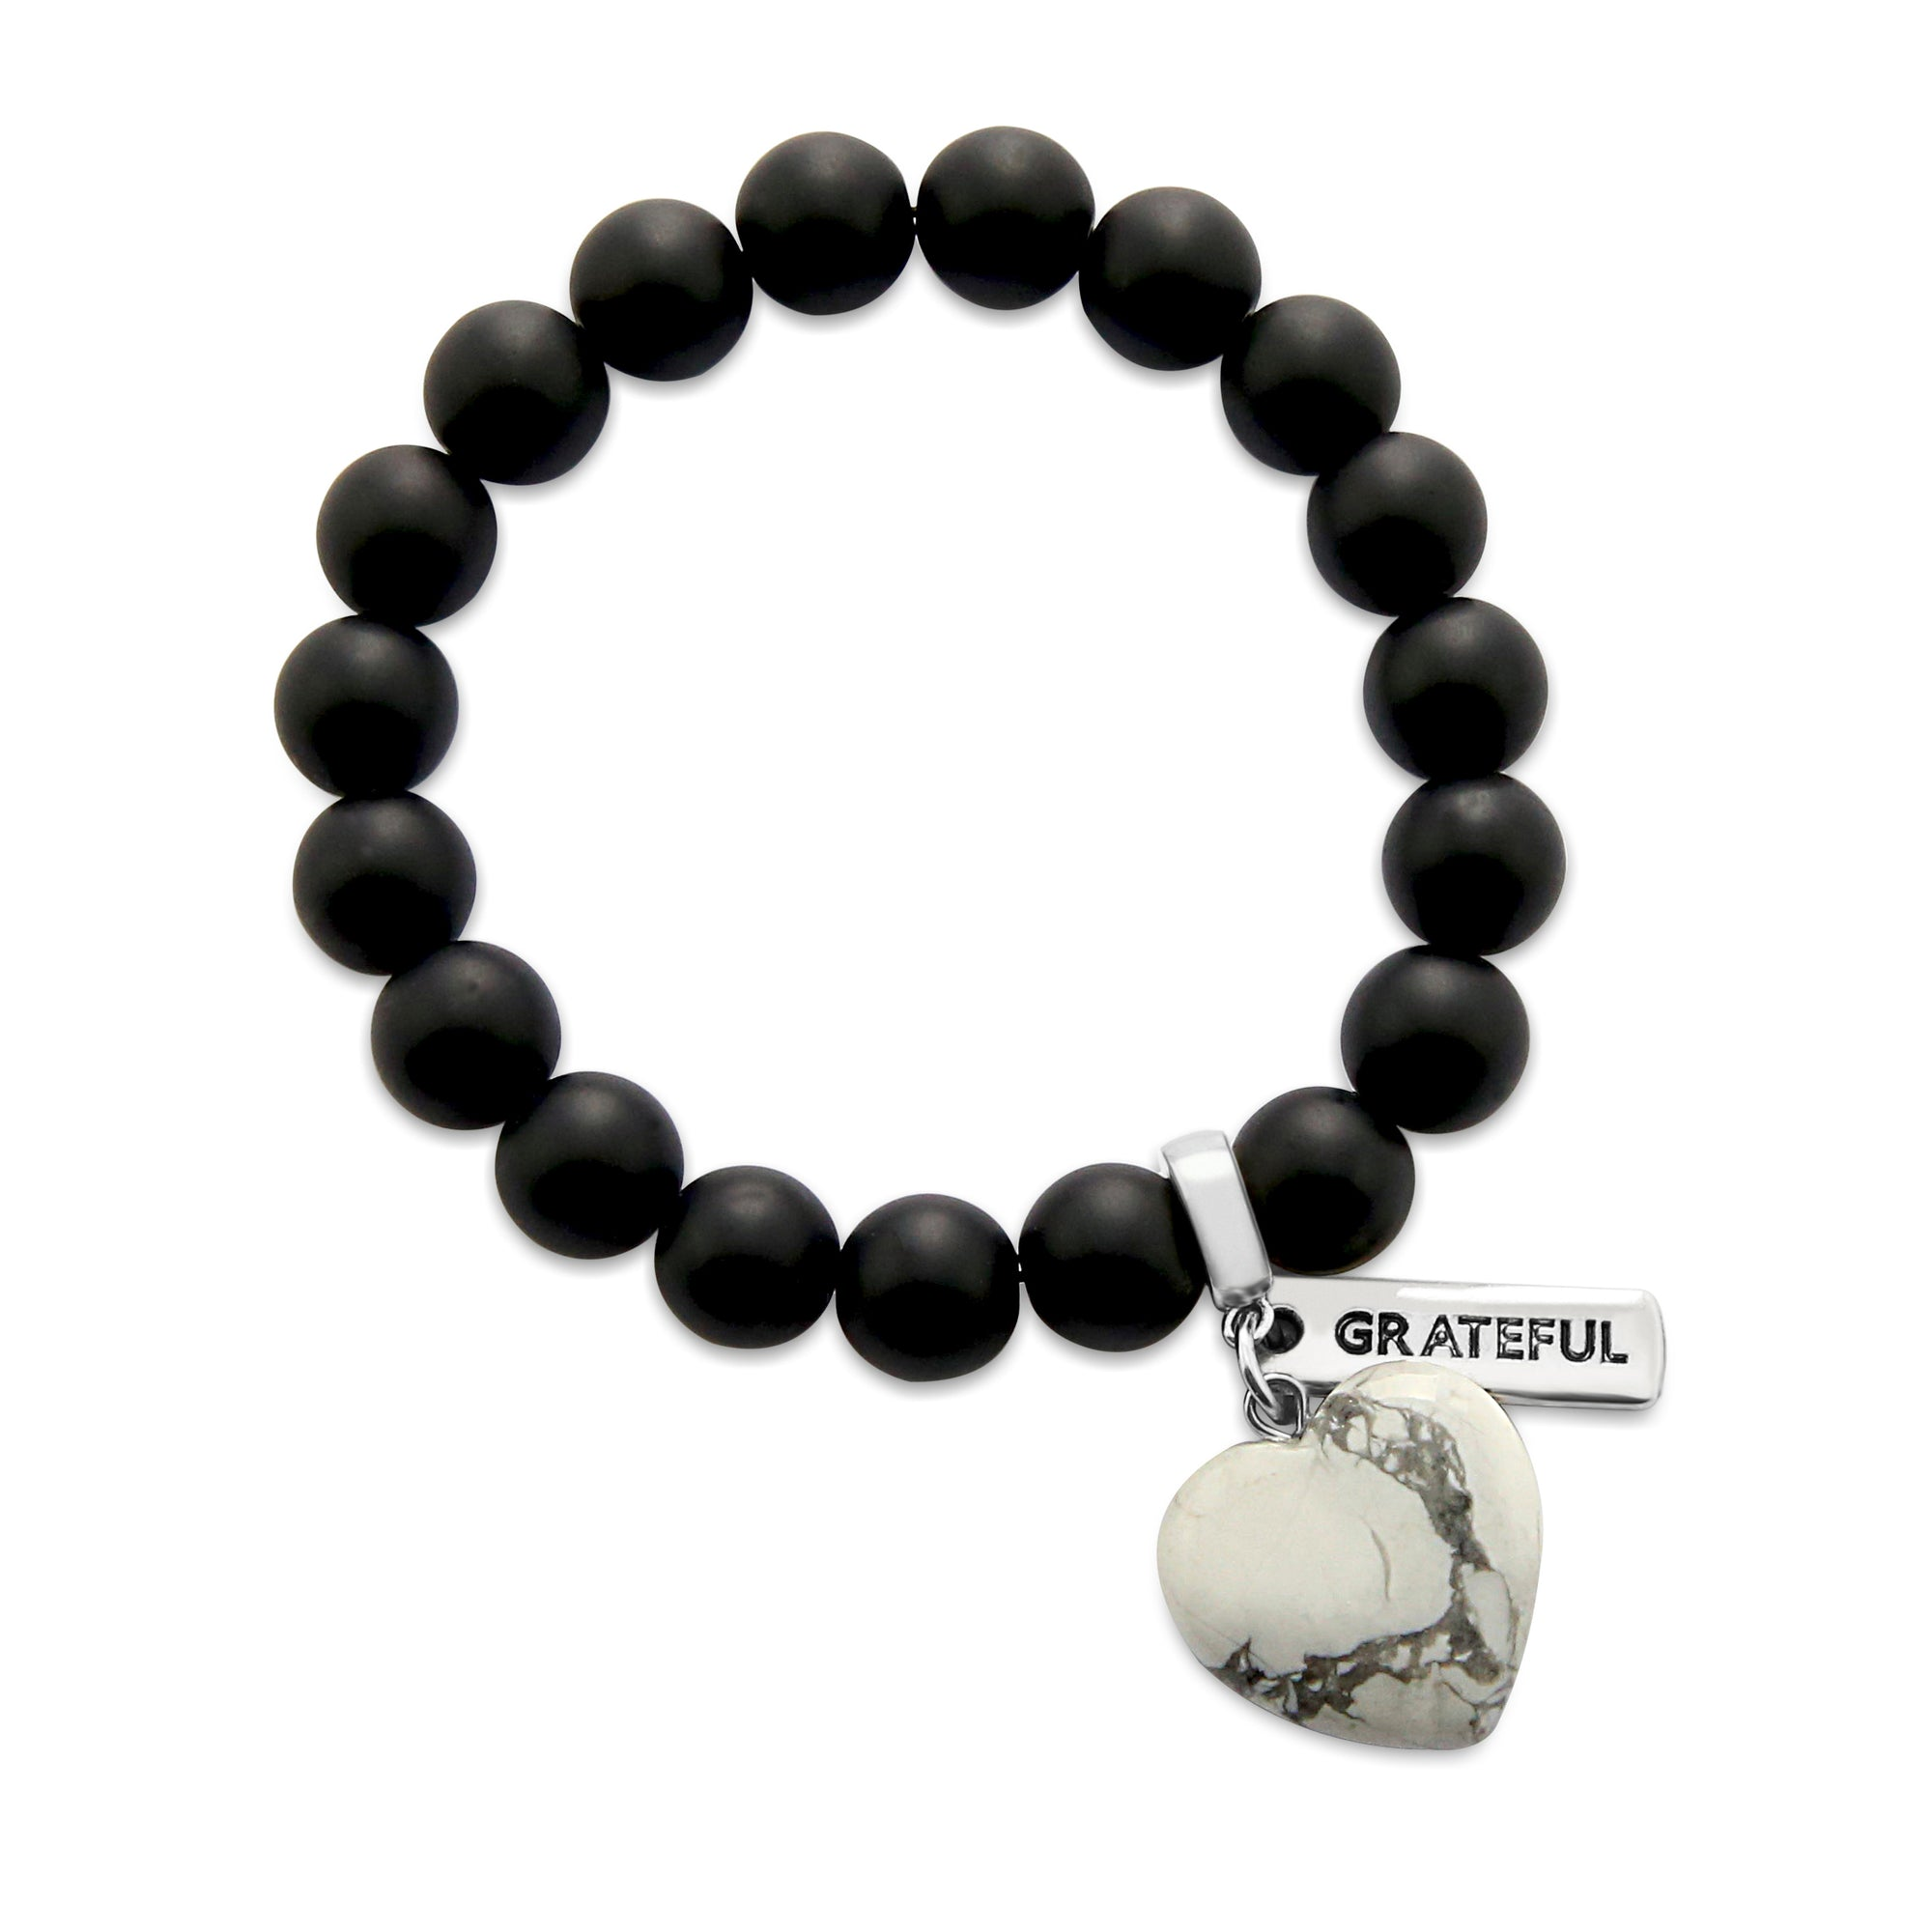 SWEETHEART Bracelet - 10mm MATT BLACK ONYX stone beads with WHITE MARBLE Heart & Word Charm